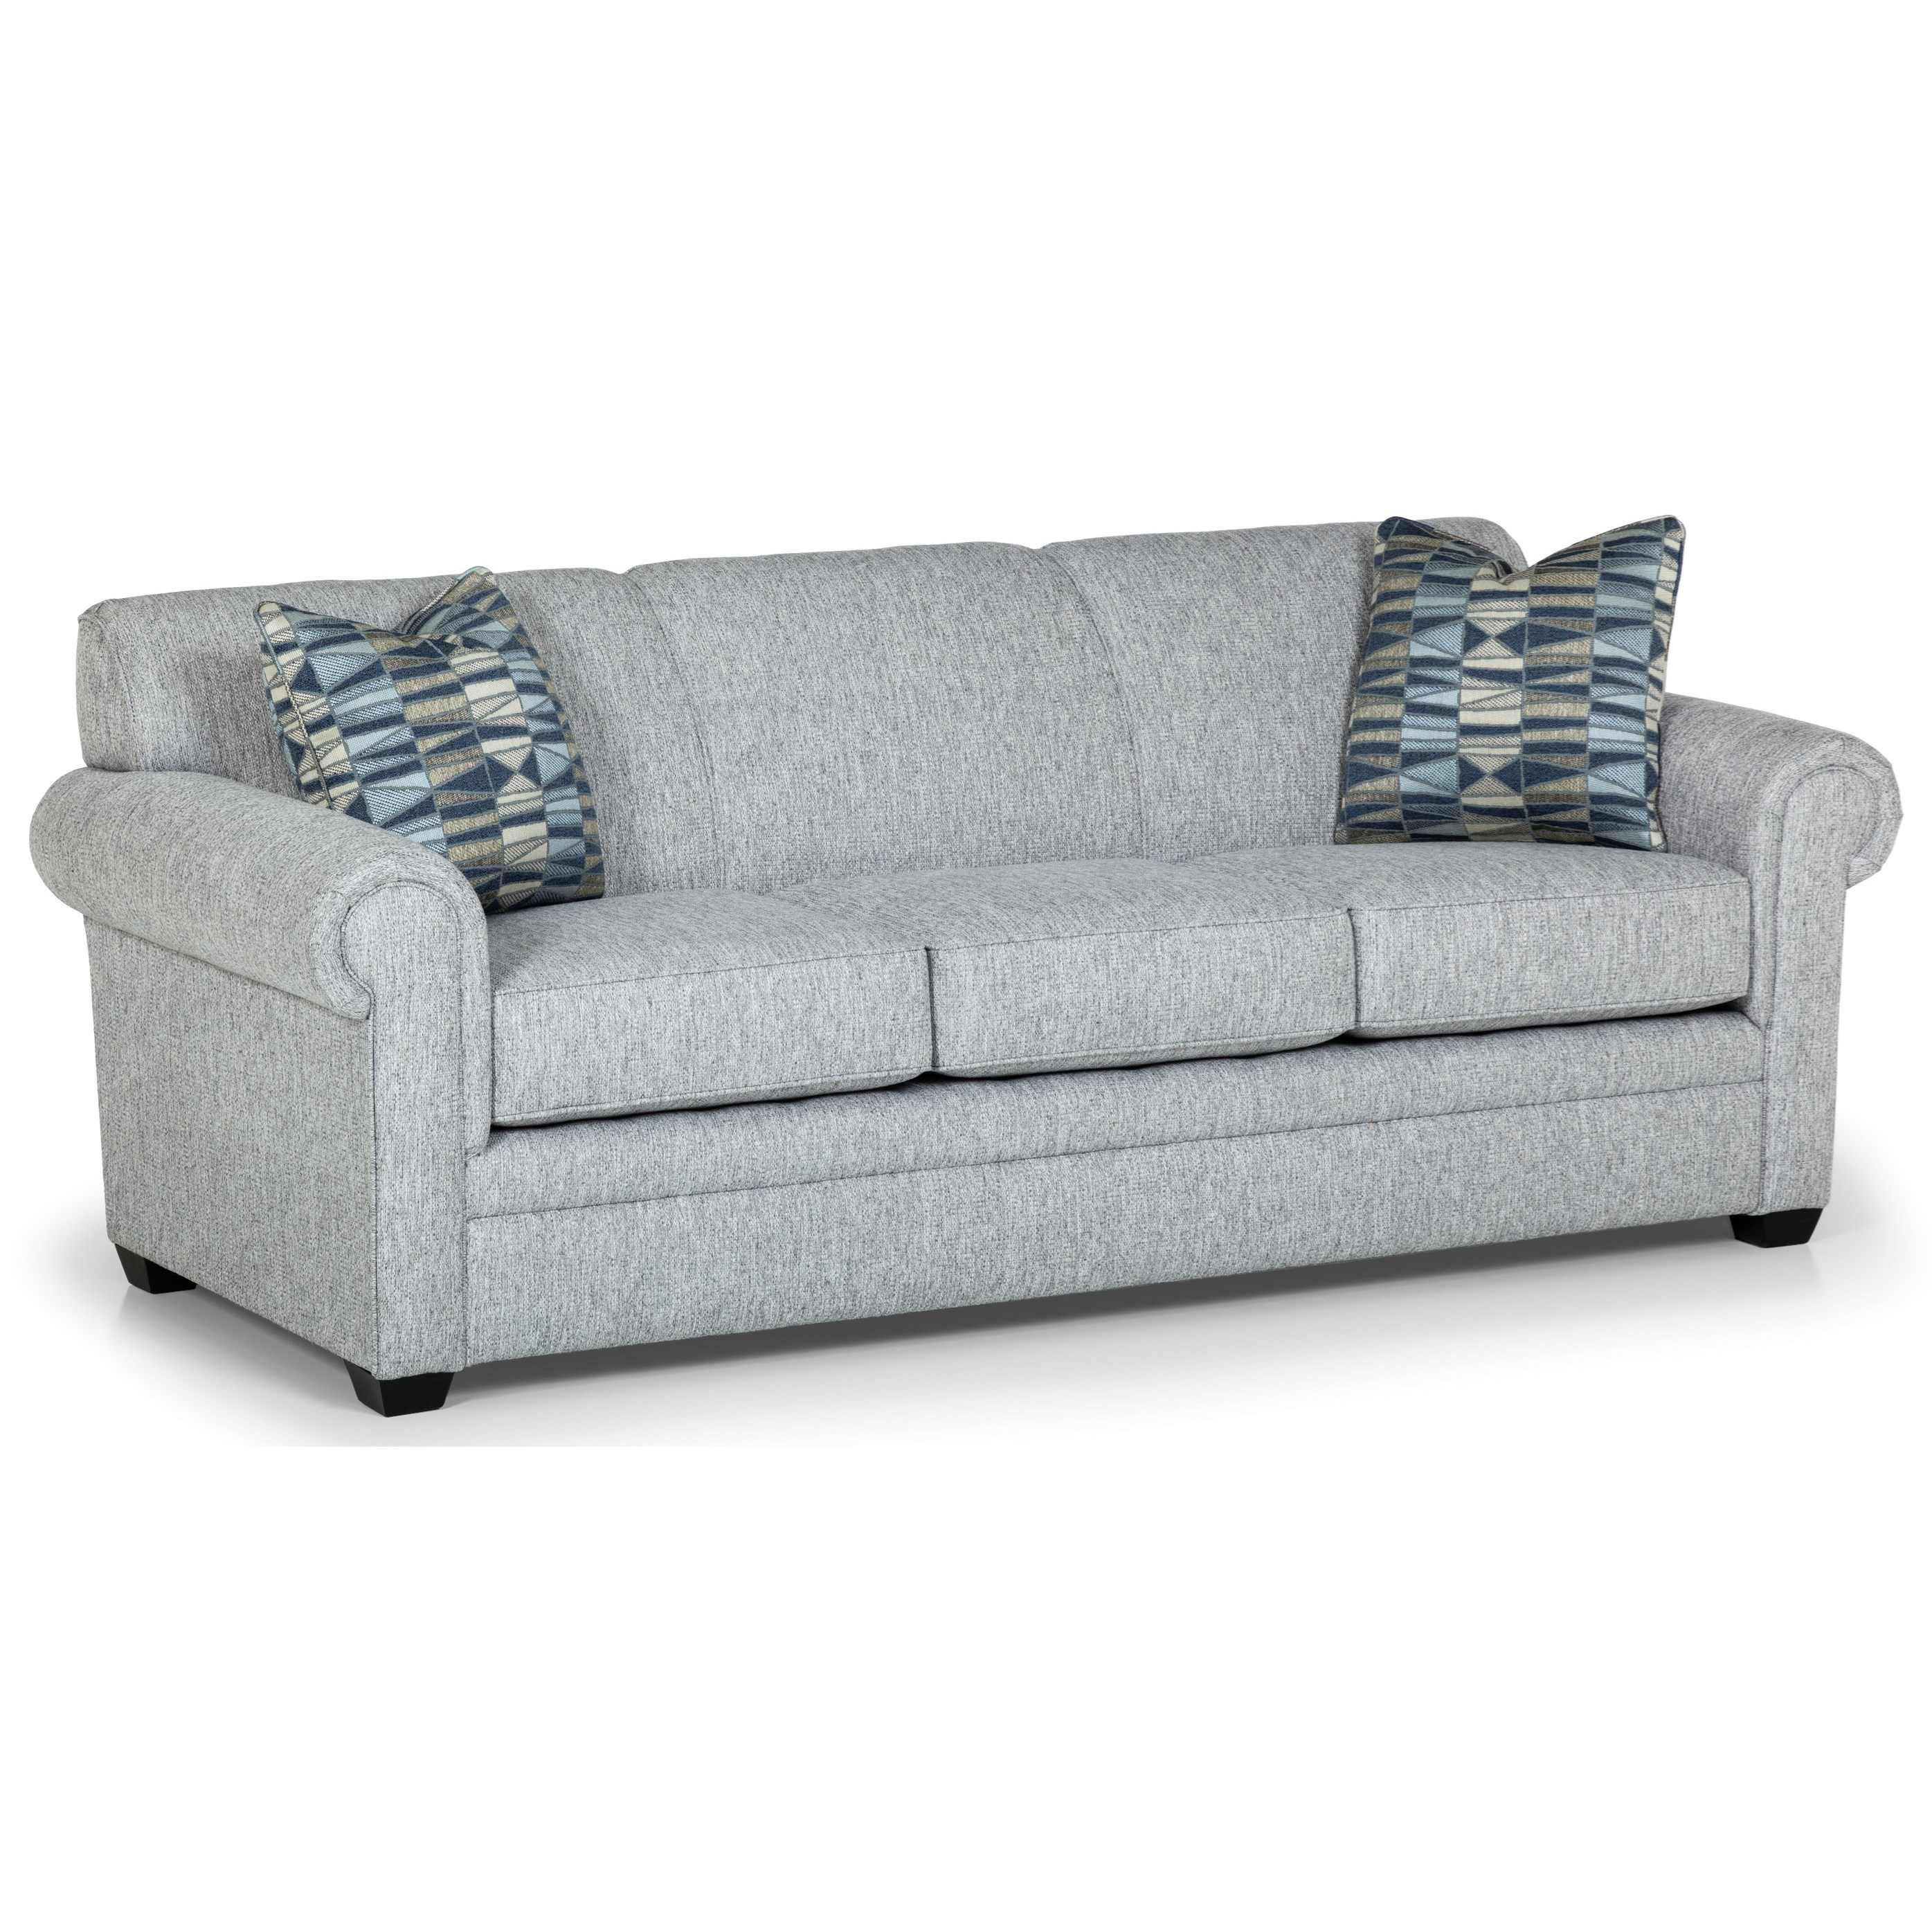 461 Sofa by Stanton at Wilson's Furniture